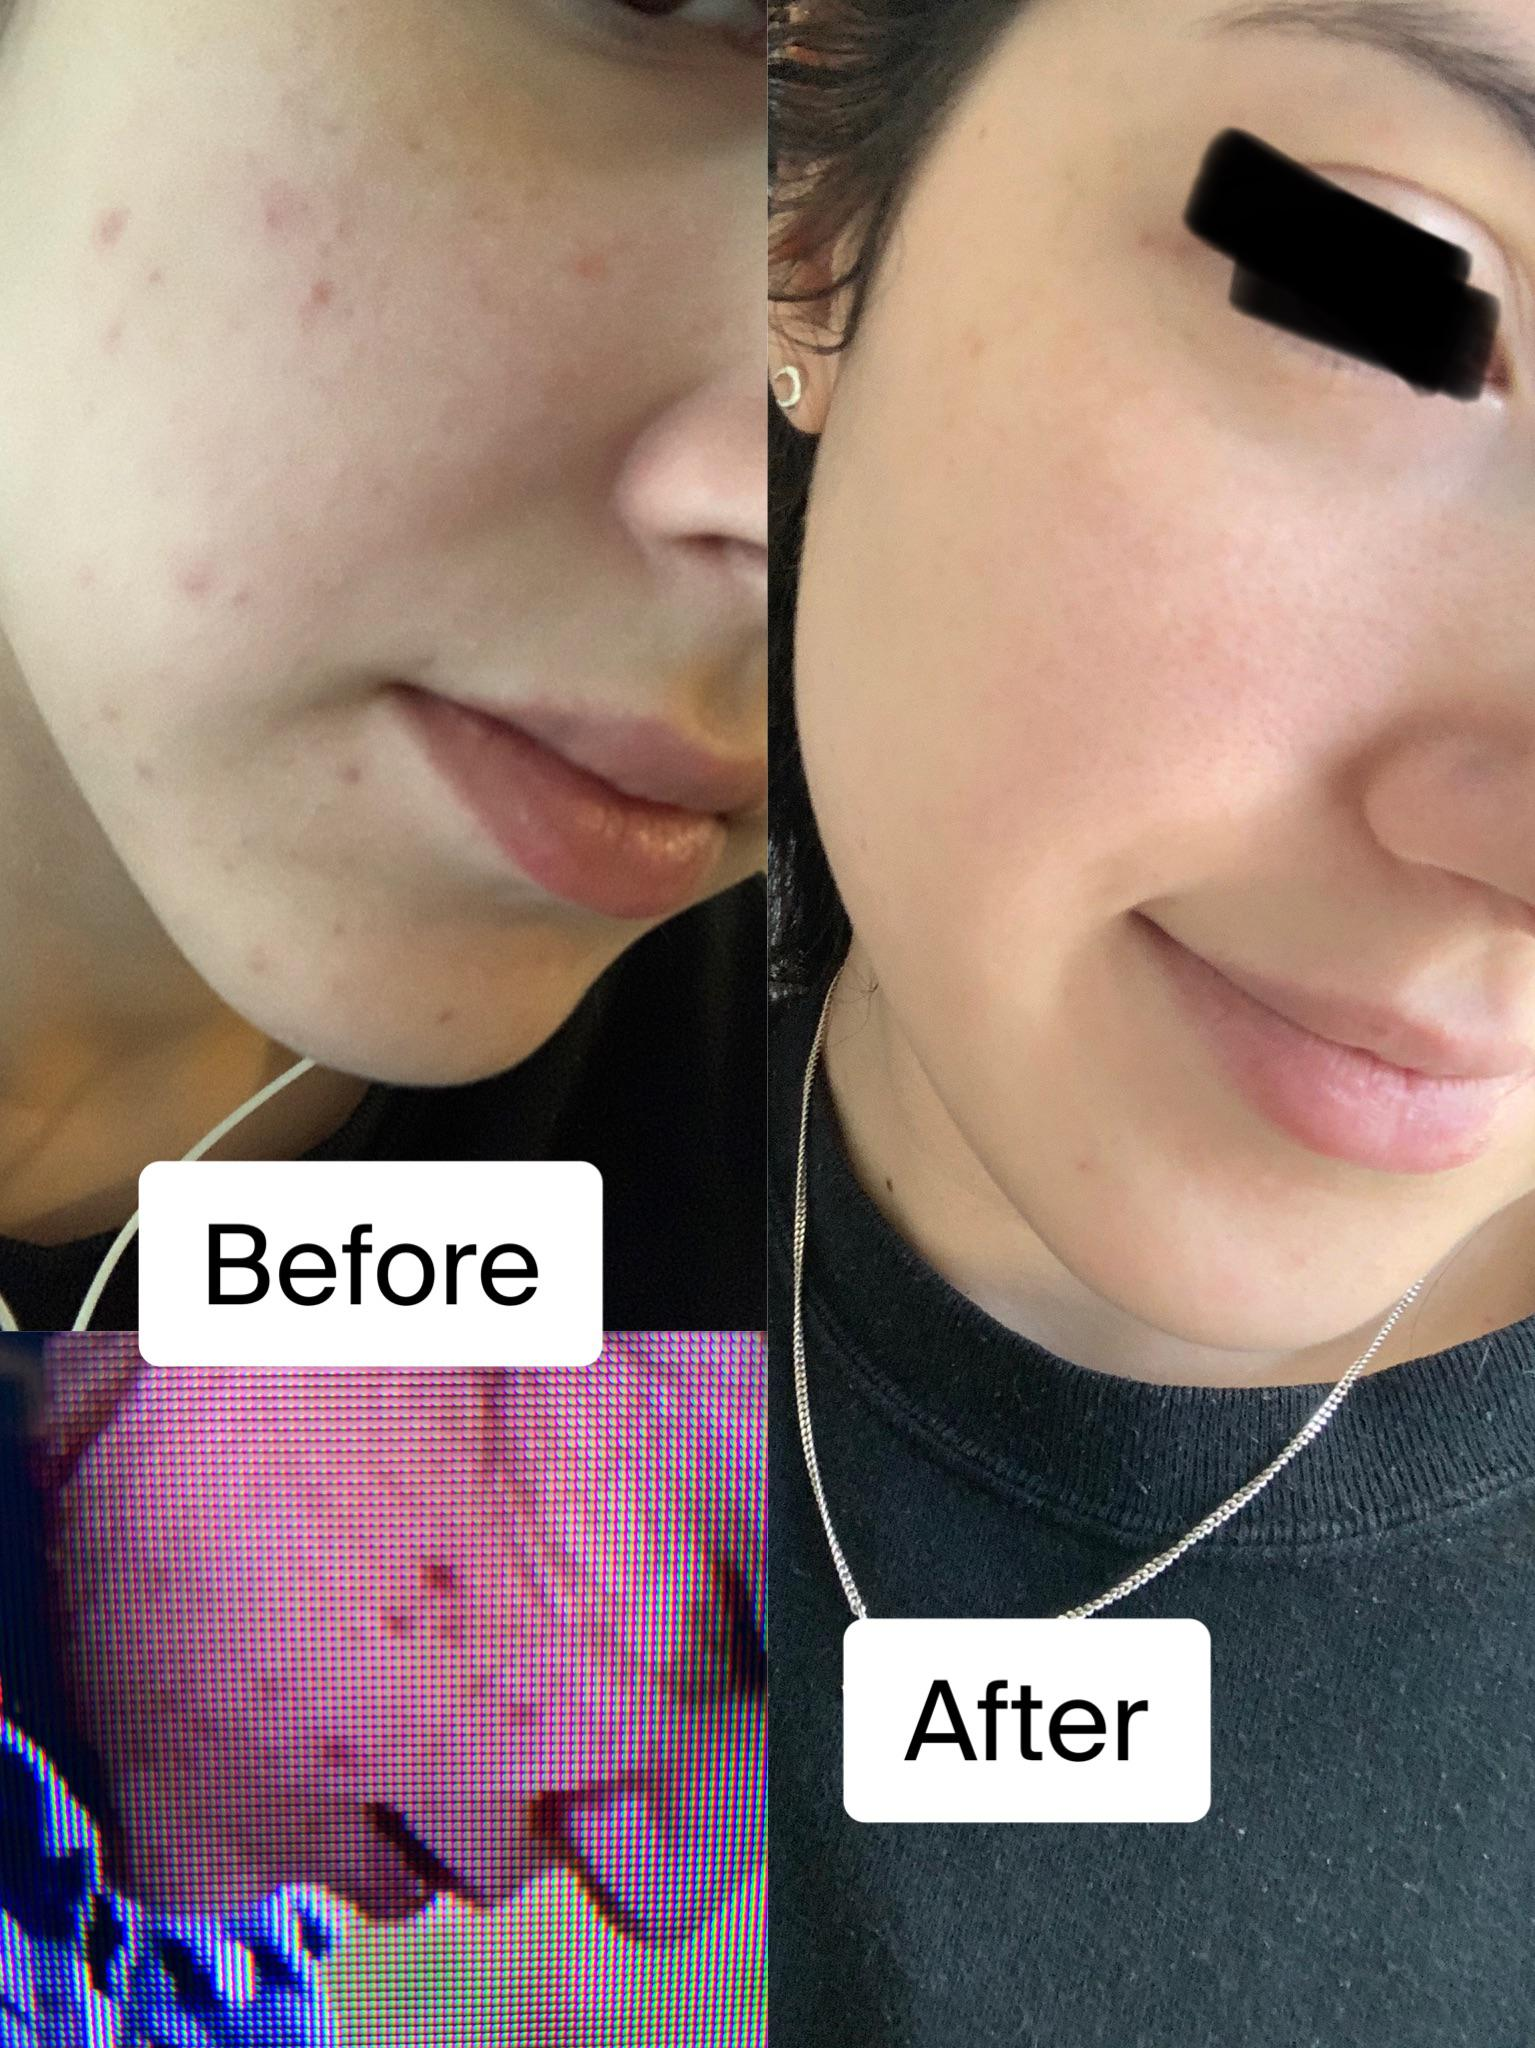 [Before and after] I was suffering from these horrible deep blemishes for a while that left many dark spots in their wake. I finally have a solid routine and my skin is better than ever!